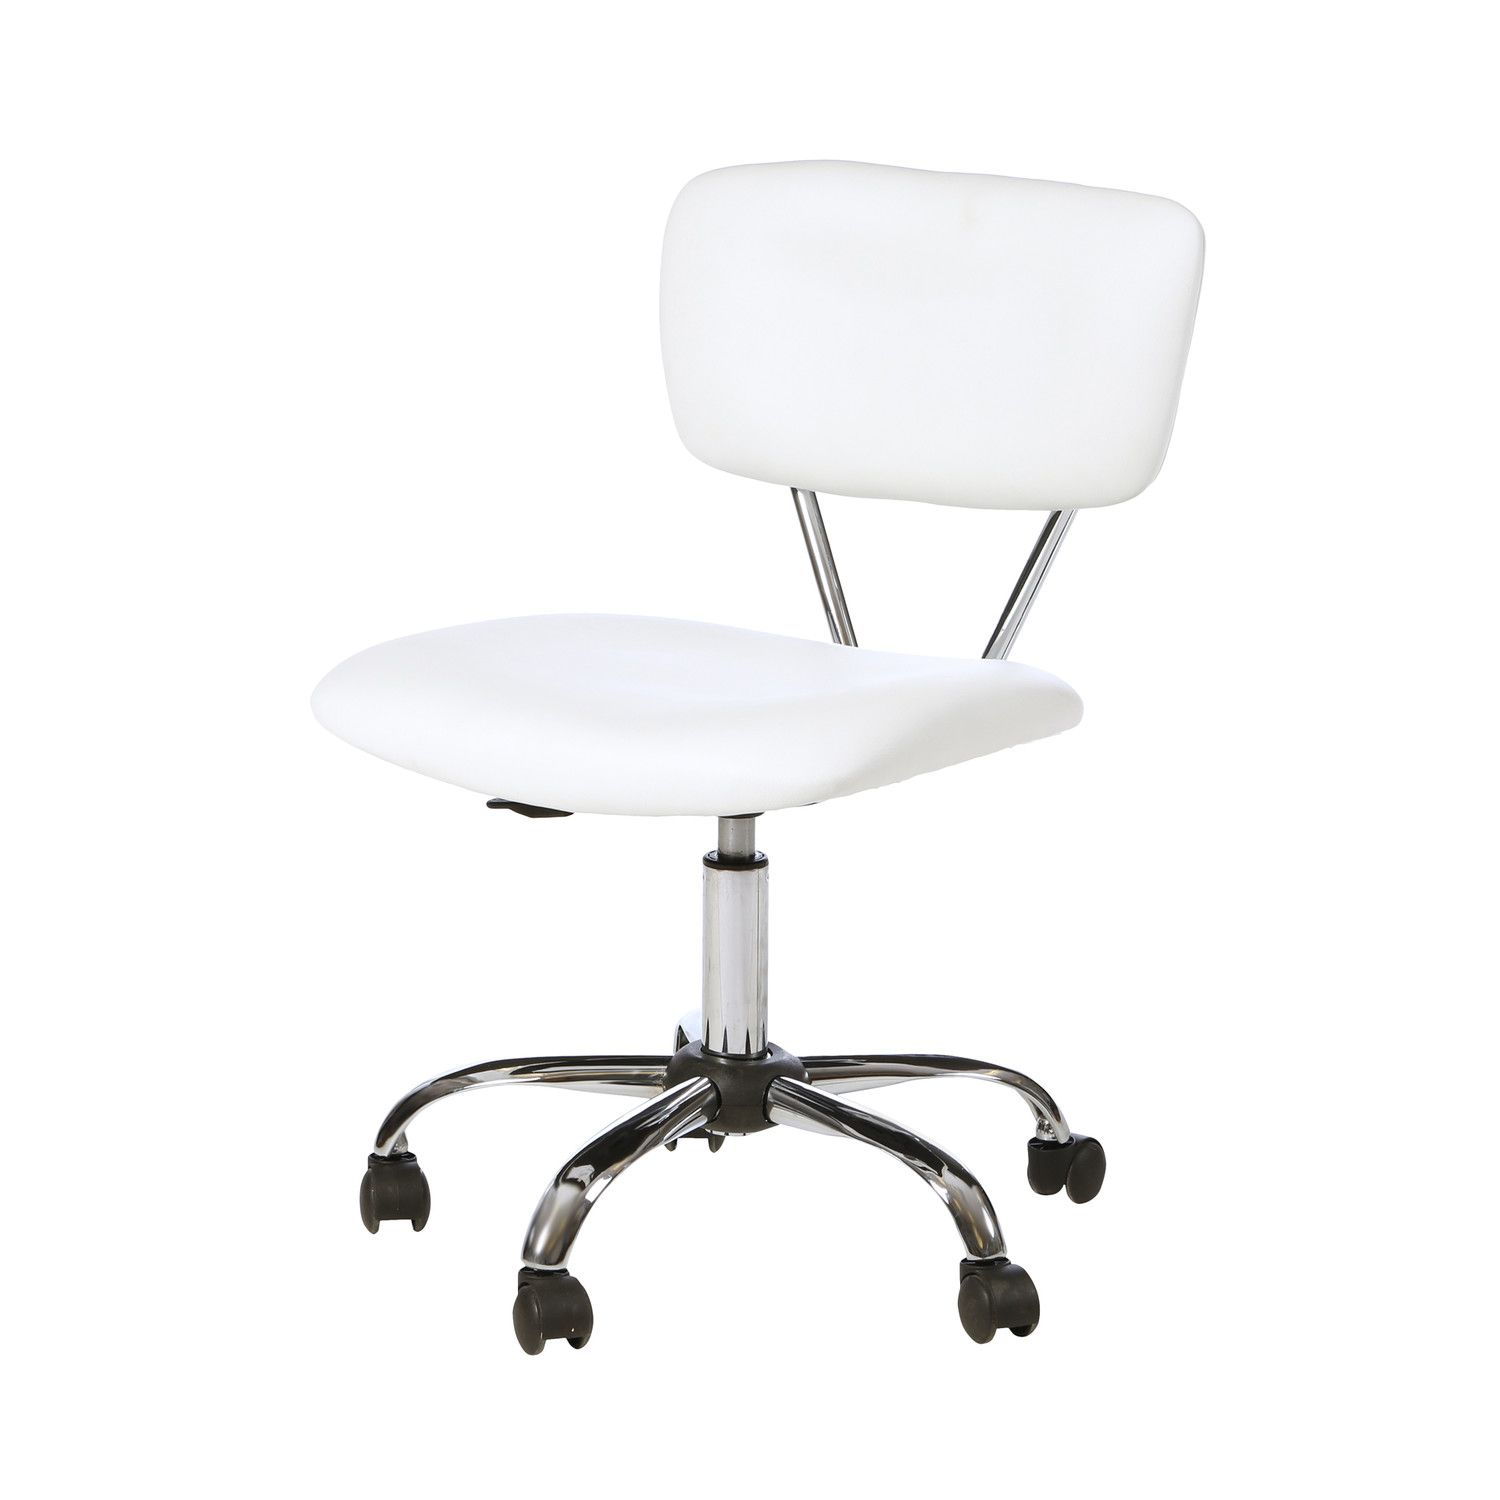 Miraculous Zipcode Design Adjustable Mid Back Sleek White Office Chair Inzonedesignstudio Interior Chair Design Inzonedesignstudiocom